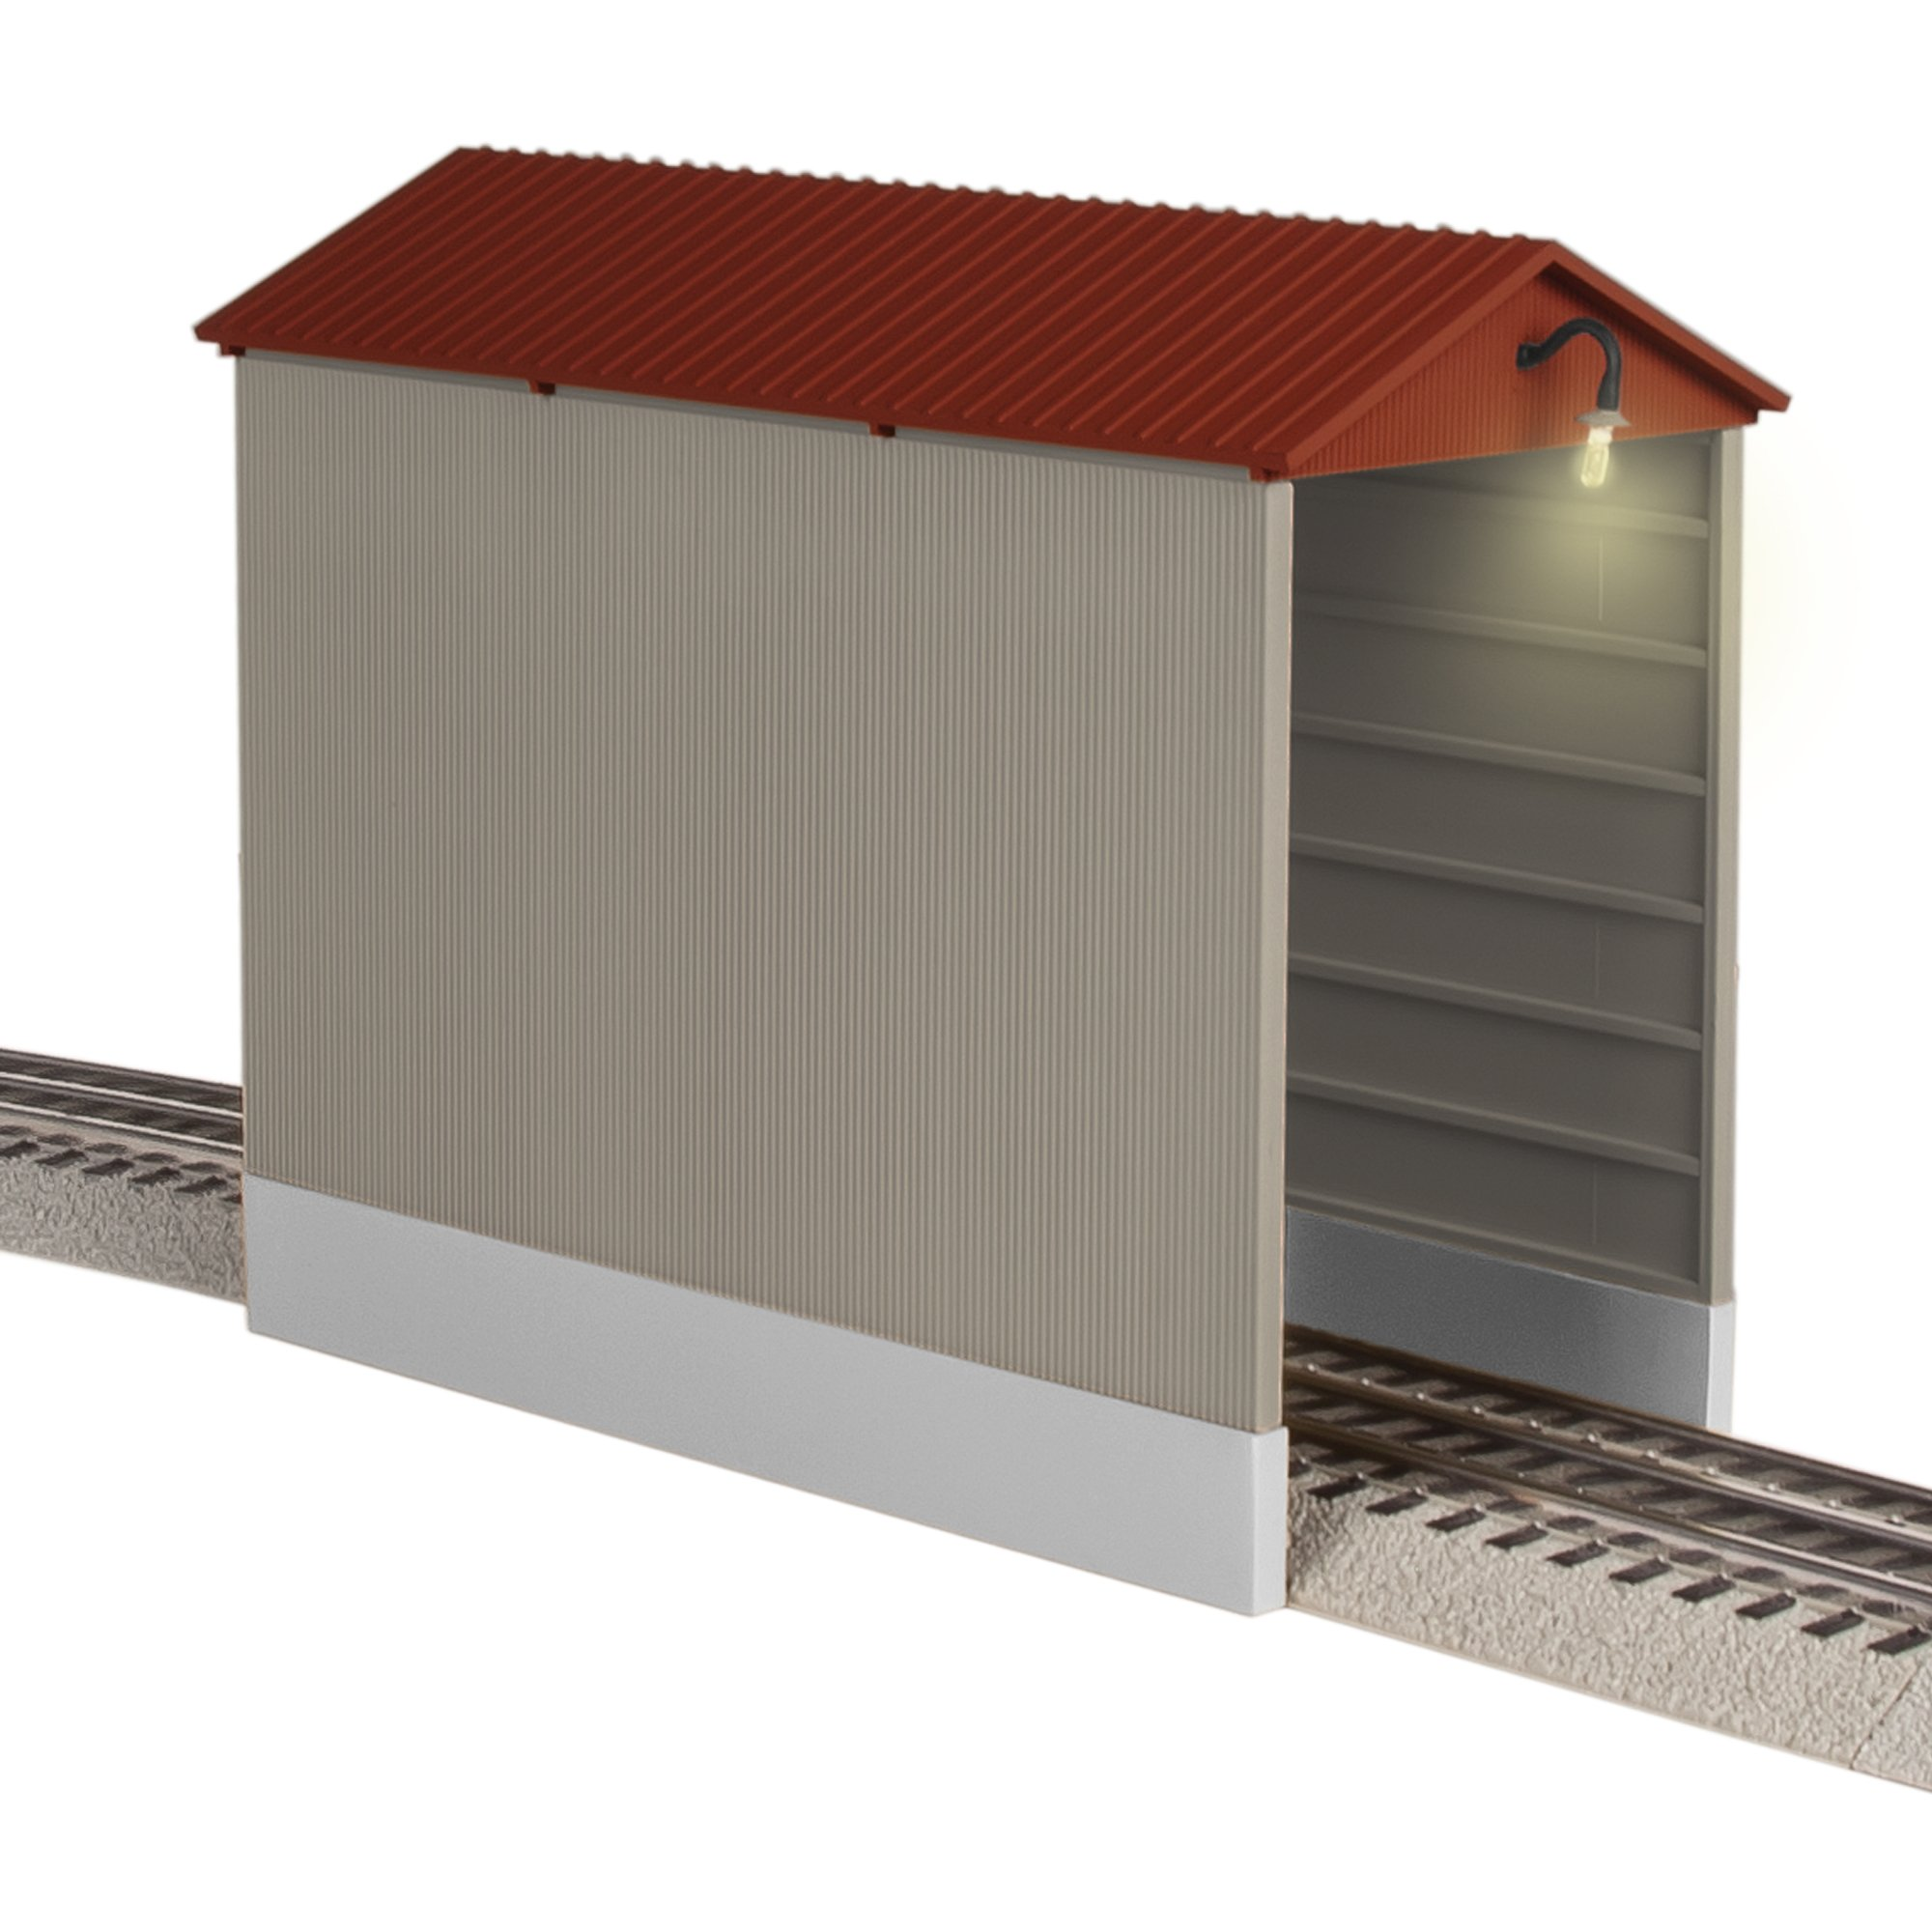 Lionel Illuminated Hopper Shed by Lionel (Image #1)